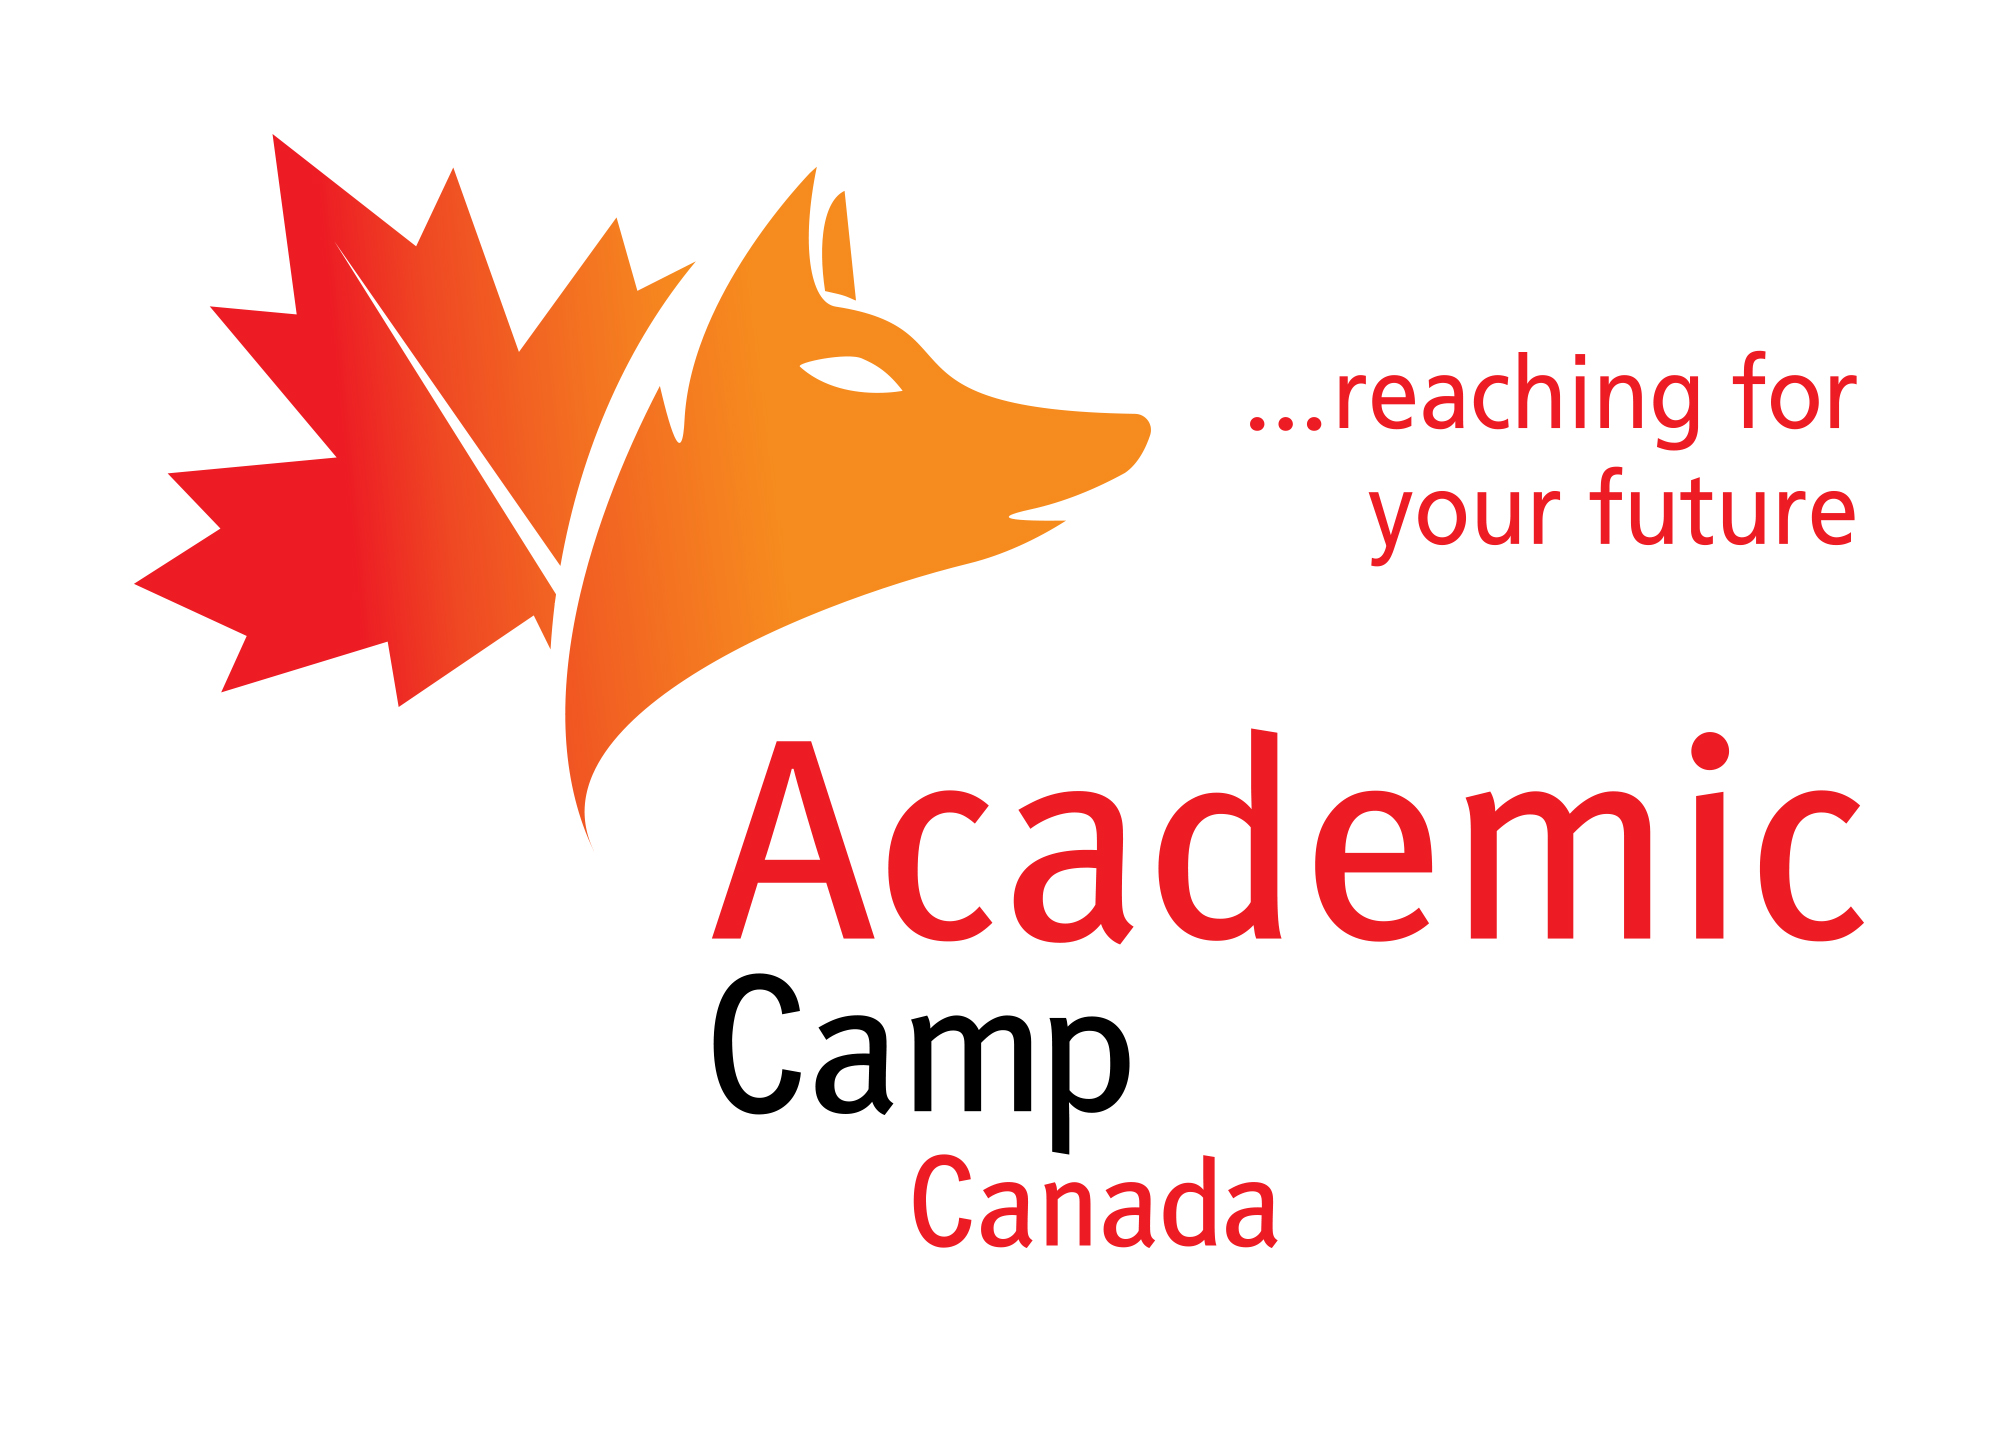 Academic Camp Canada reviews, opinions and consumer feedback